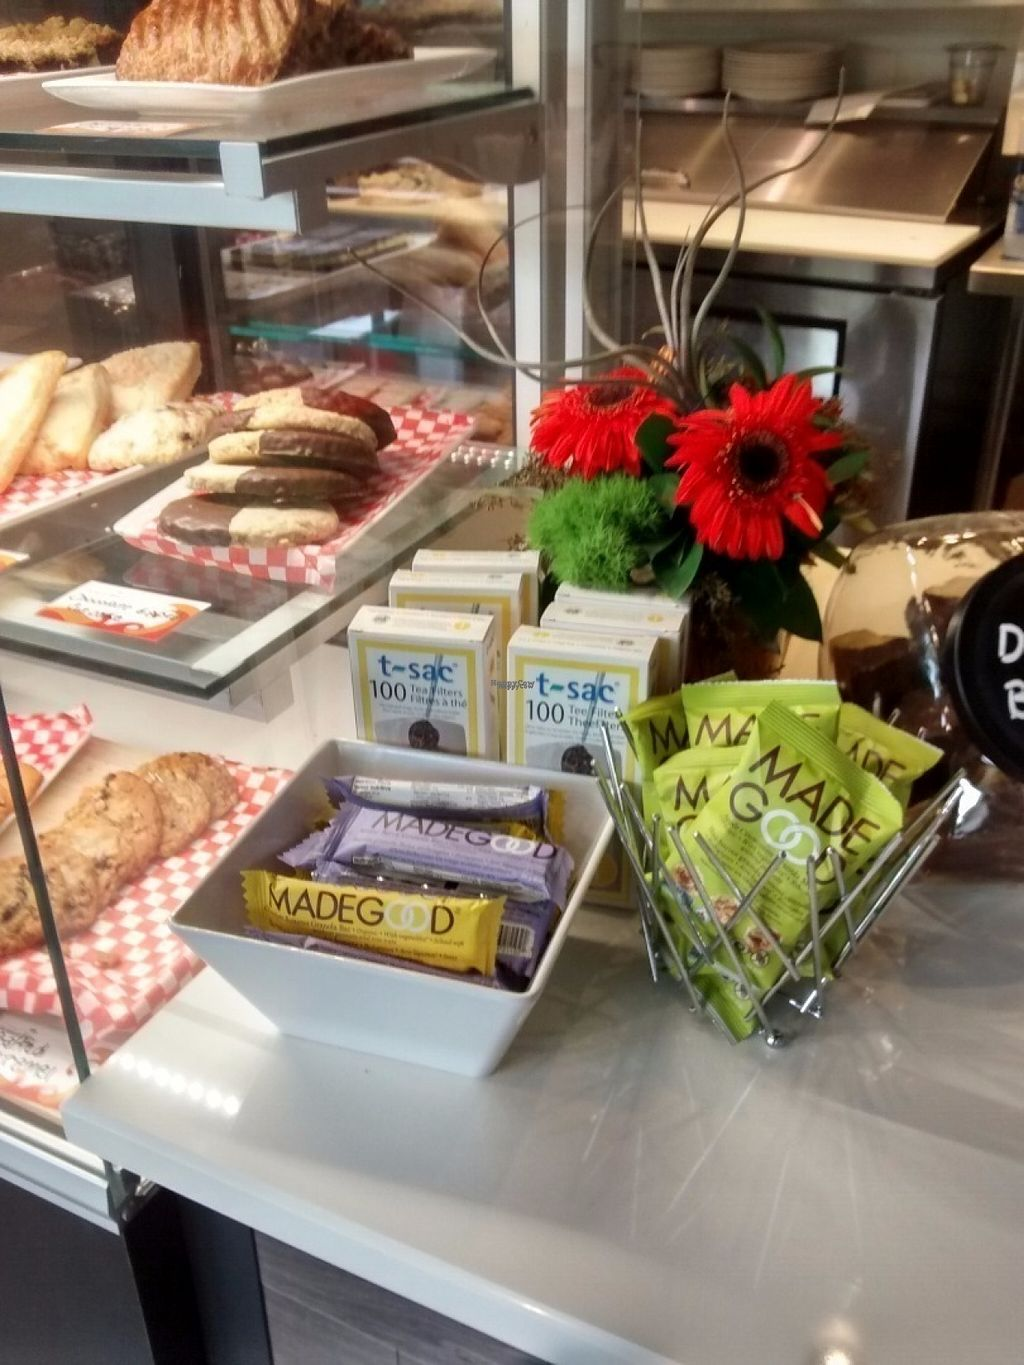 """Photo of The Nook Espresso Bar and Lounge  by <a href=""""/members/profile/QuothTheRaven"""">QuothTheRaven</a> <br/>Vegan bars <br/> August 18, 2016  - <a href='/contact/abuse/image/78554/169614'>Report</a>"""